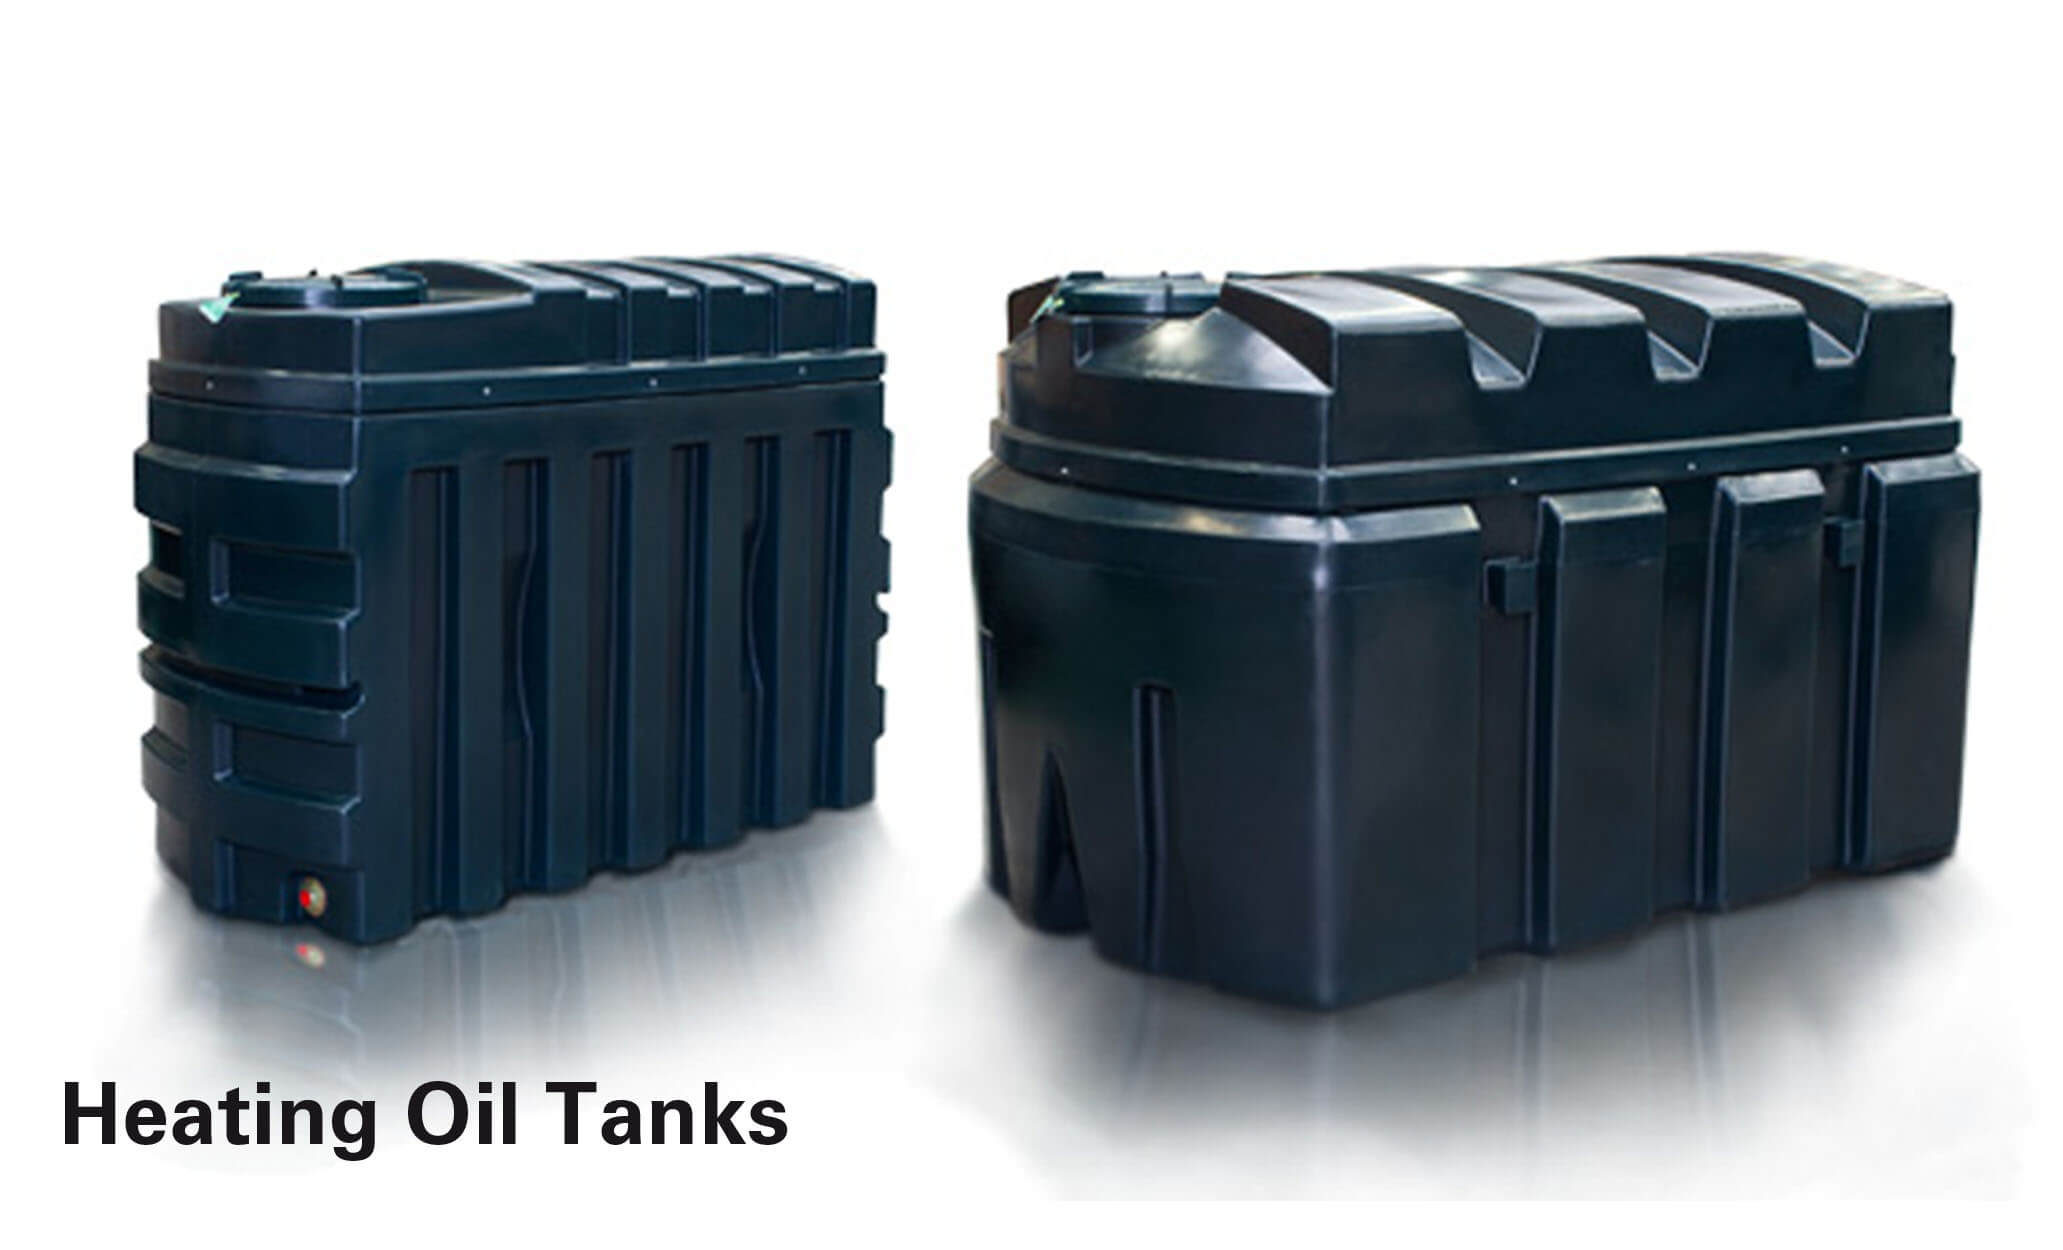 Titan Heating Oil Tanks